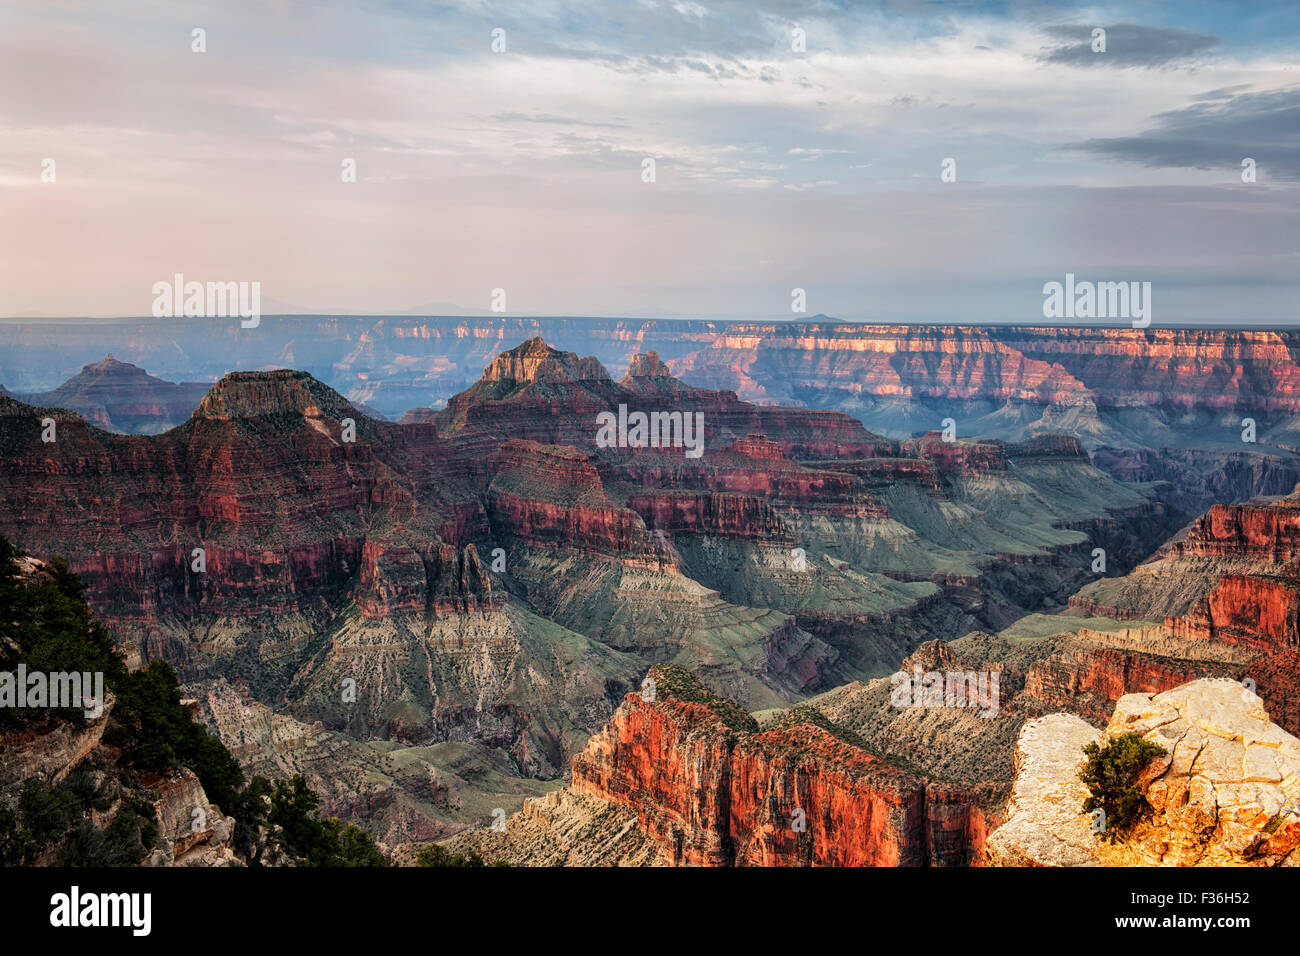 Early morning light warms up the North Rim from Bright Angel Point in Arizona's Grand Canyon National Park. - Stock Image